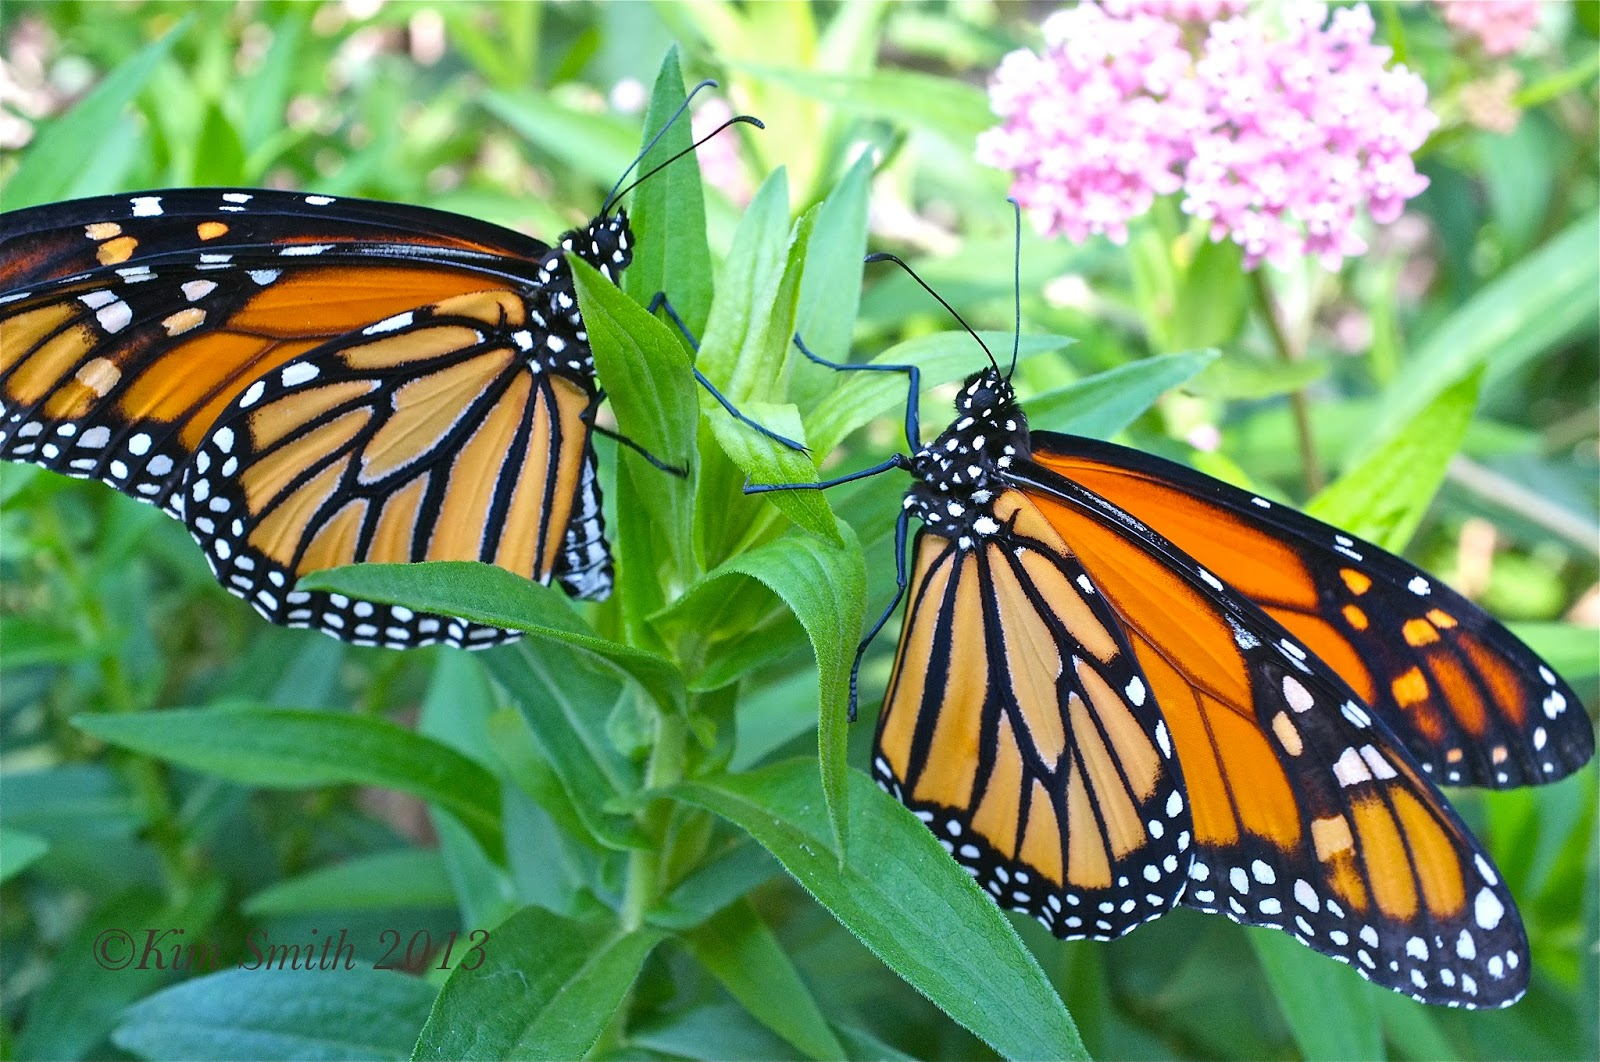 Backyard Patch Herbal Blog: Where are the Monarch's?